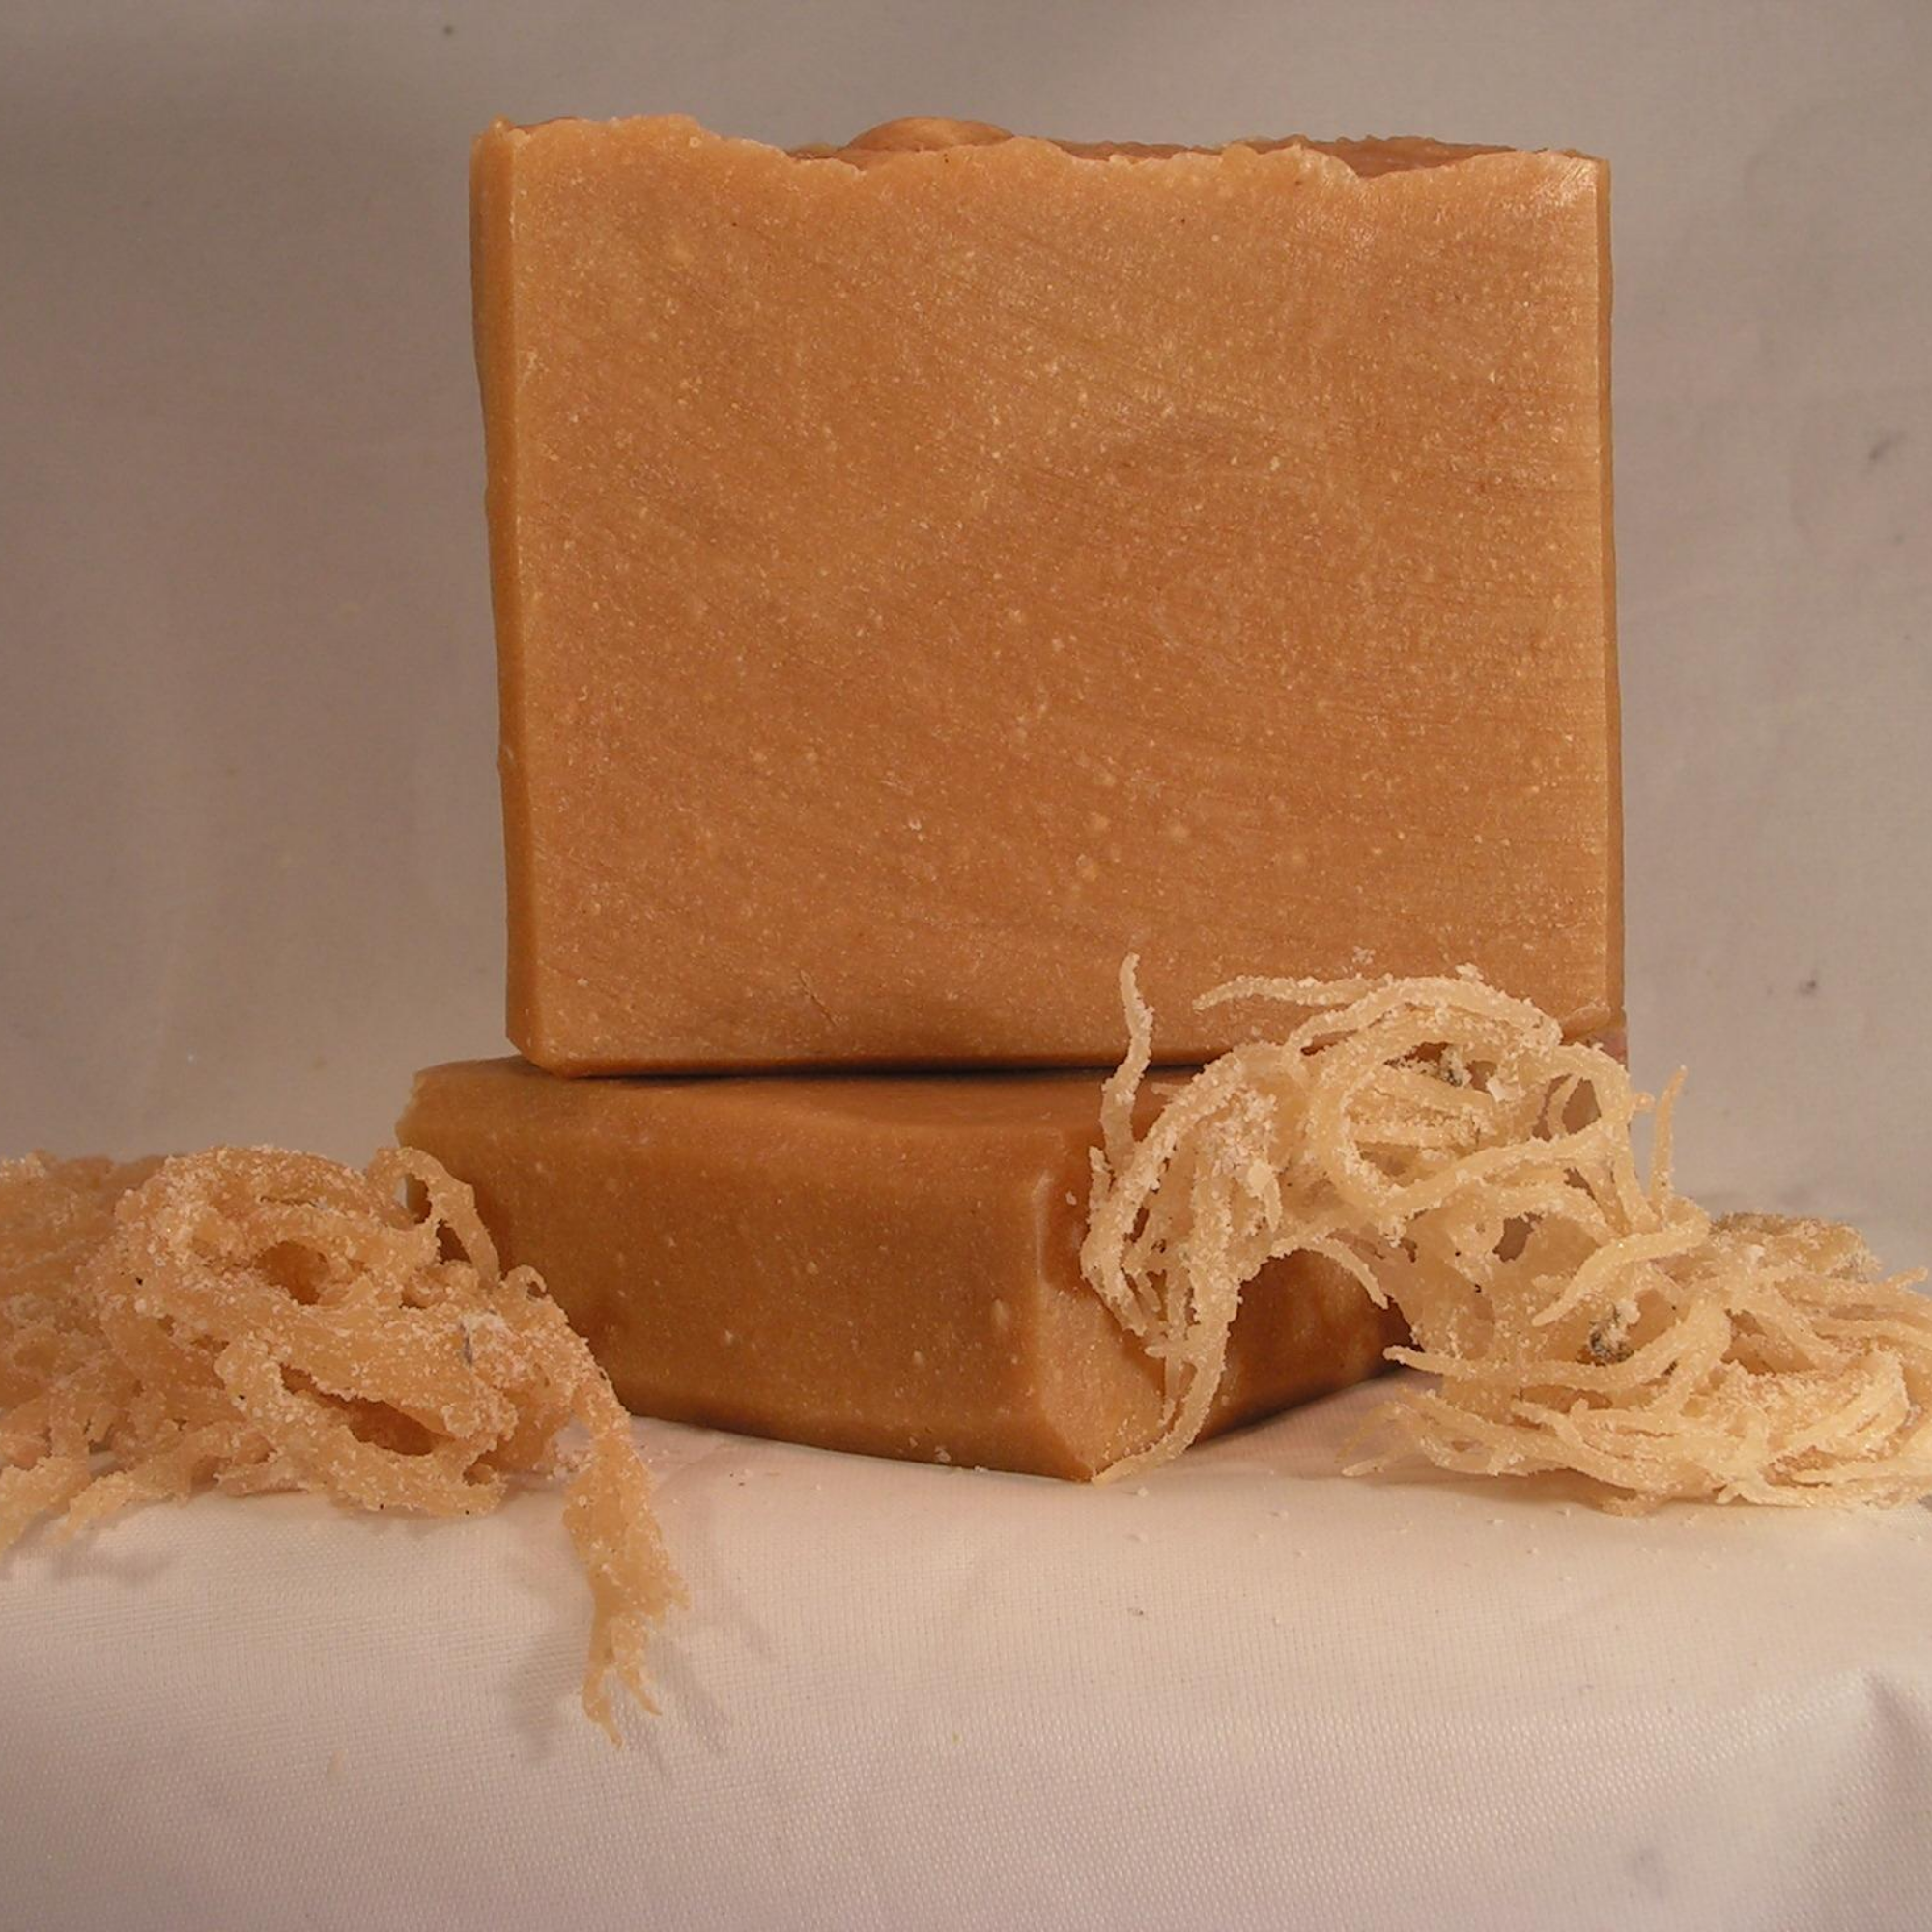 VIETNAMESE SEA MOSS/ EUCHEUMA COTTONII SOAP COMMITED 100% NATURE - Ms Katie A +84352310575